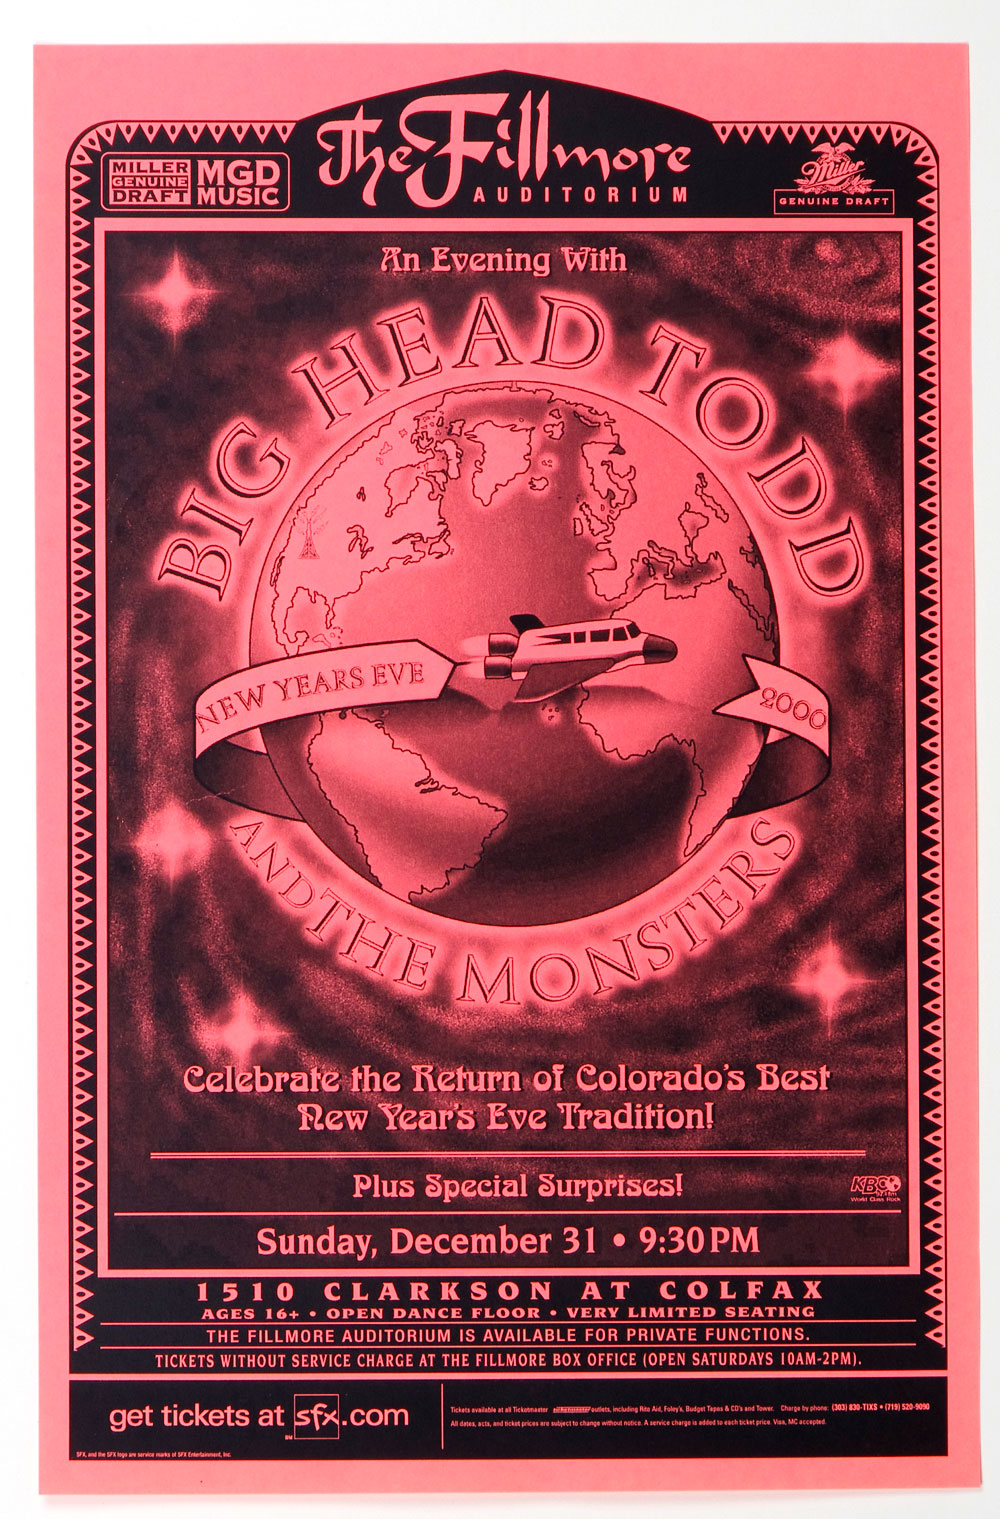 Big Head Todd and The Monster Poster 2000 Dec 31 The Fillmore Denver